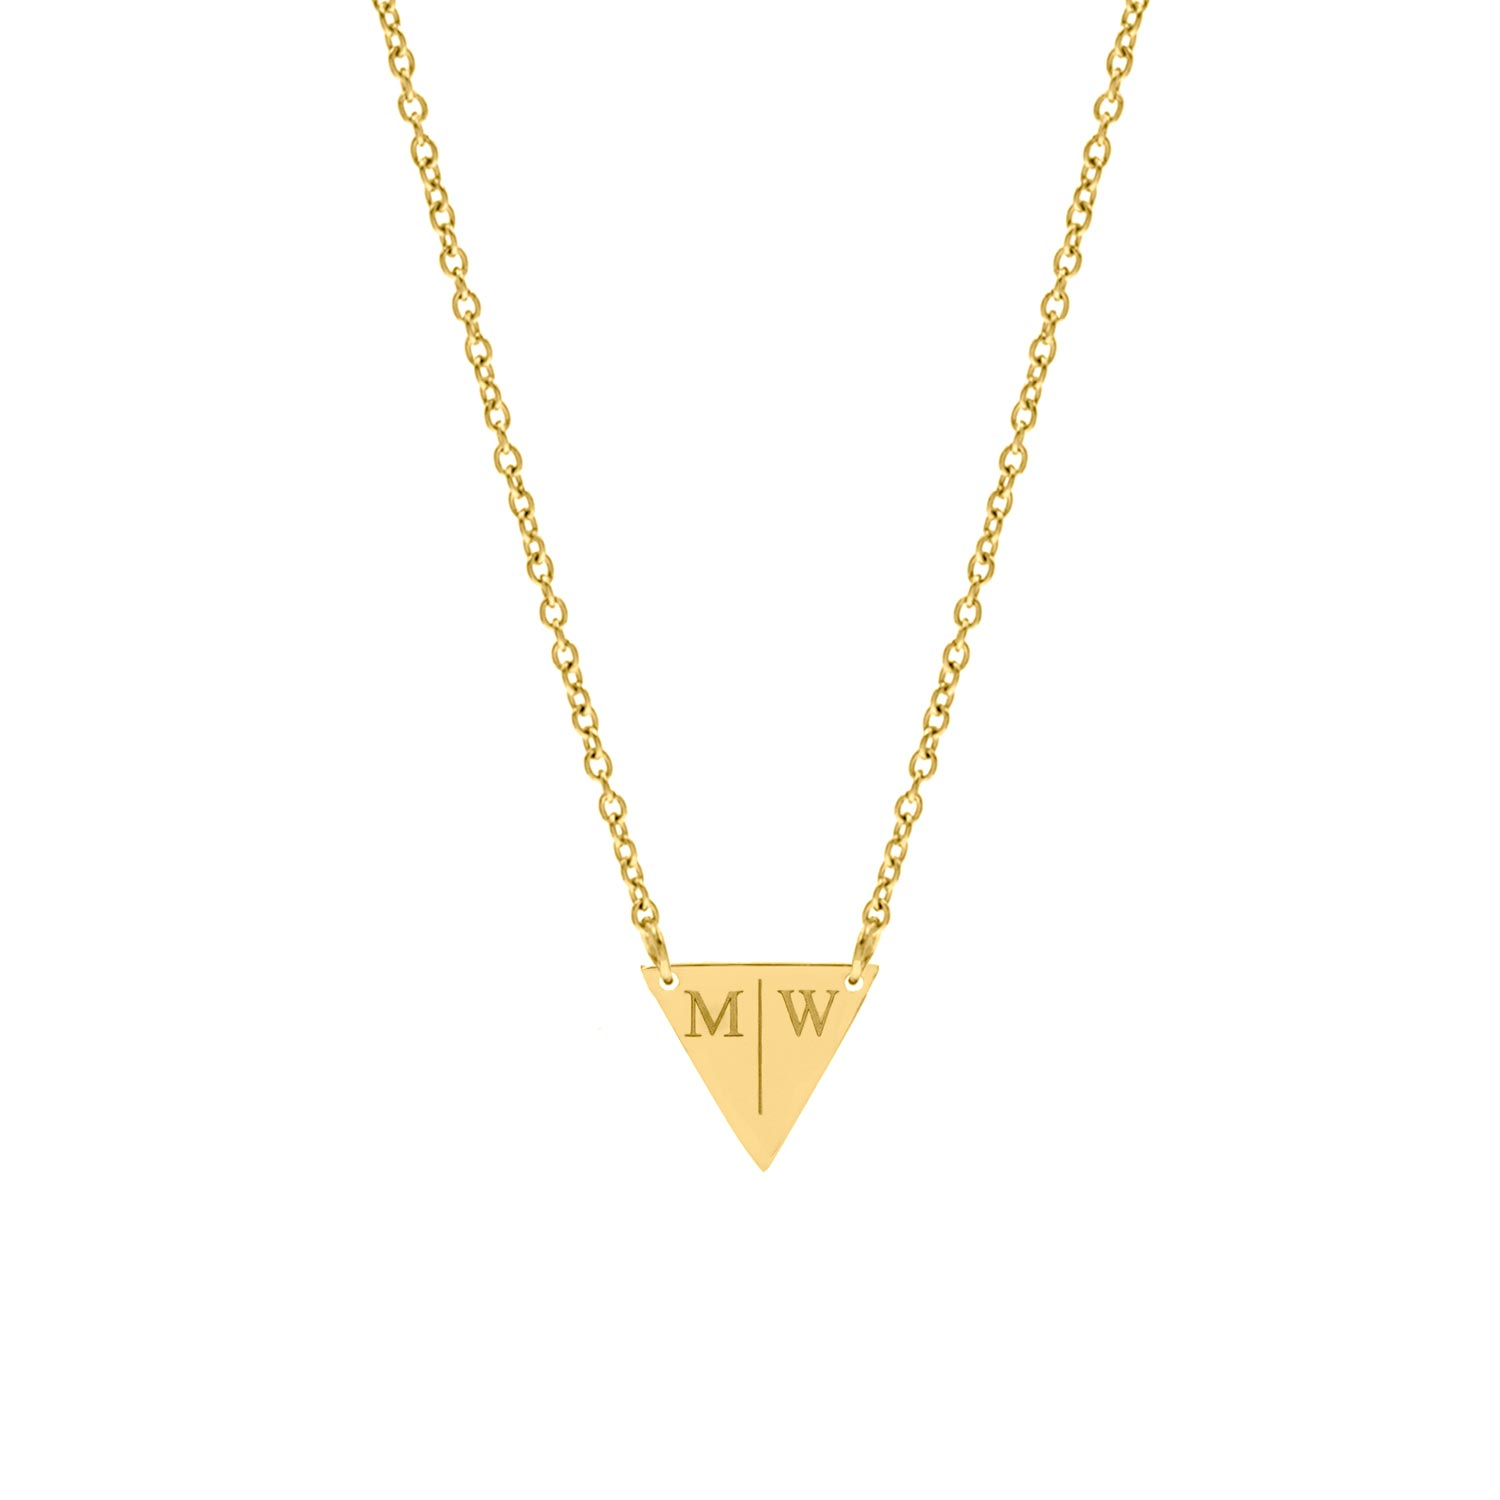 Driehoek ketting 2 letters gold plated